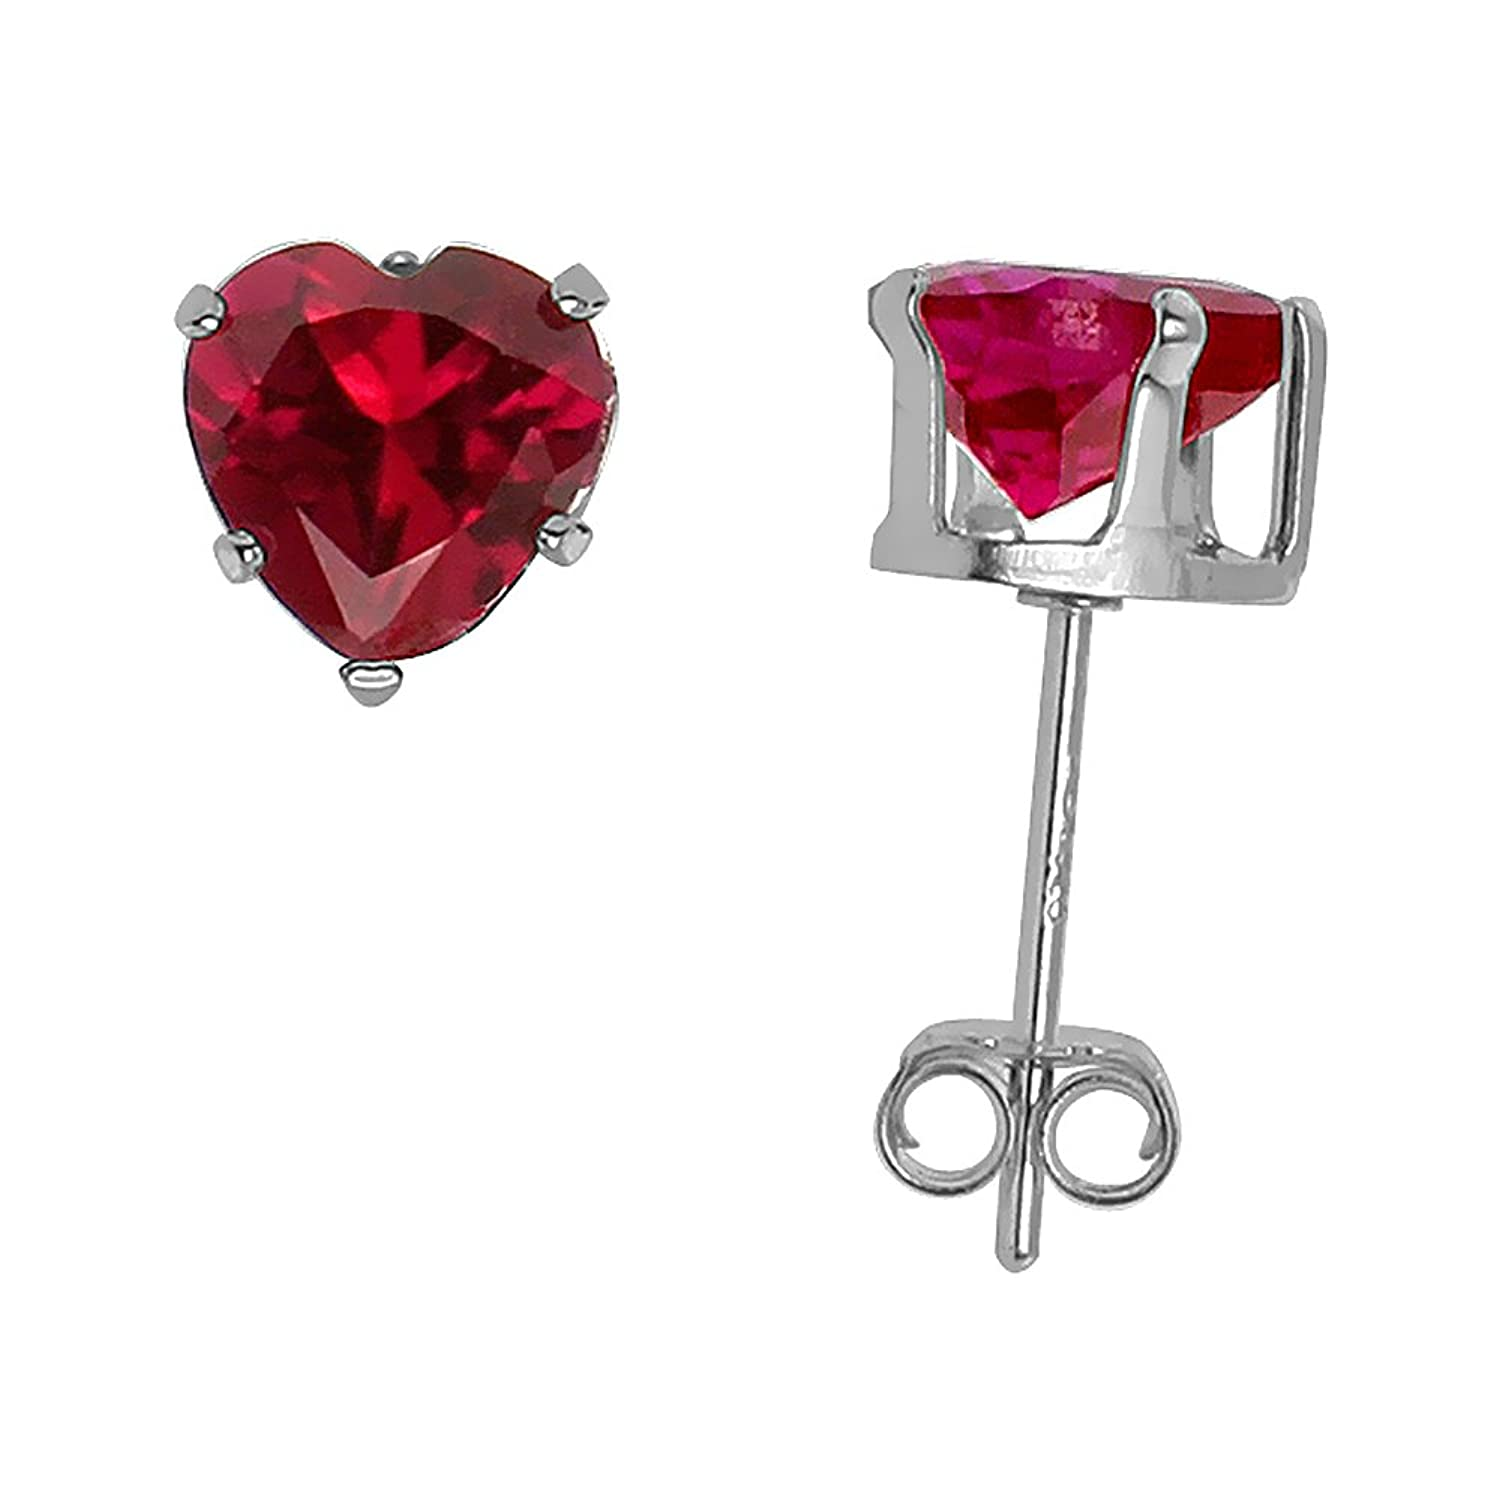 earrings lab jewelers sterling friedman jewellery round grown faviore ruby s product stud